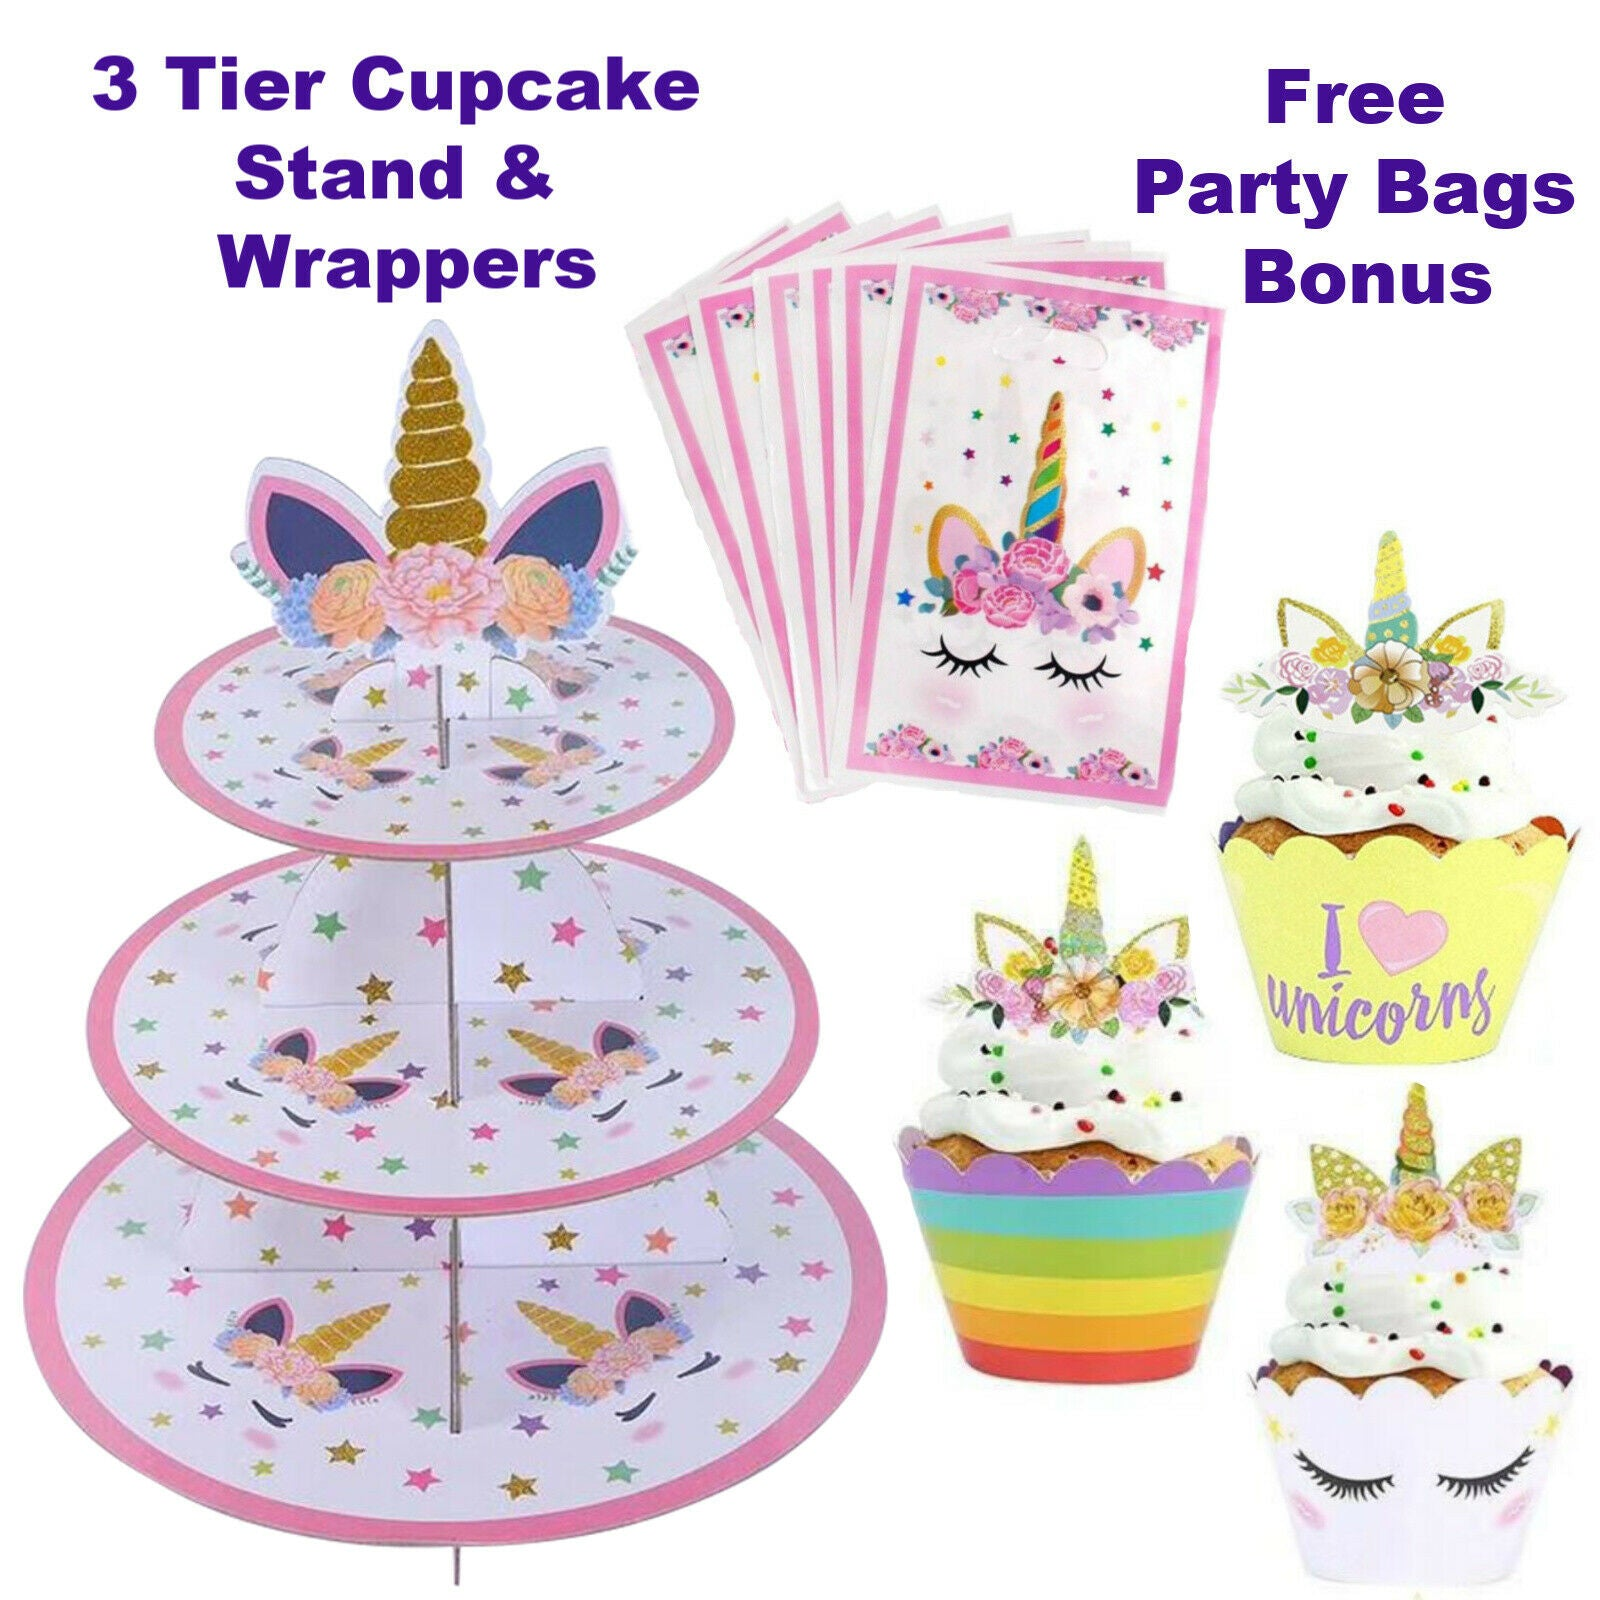 Unicorn Cake Toppers, 3 Tier Cupcake Stand